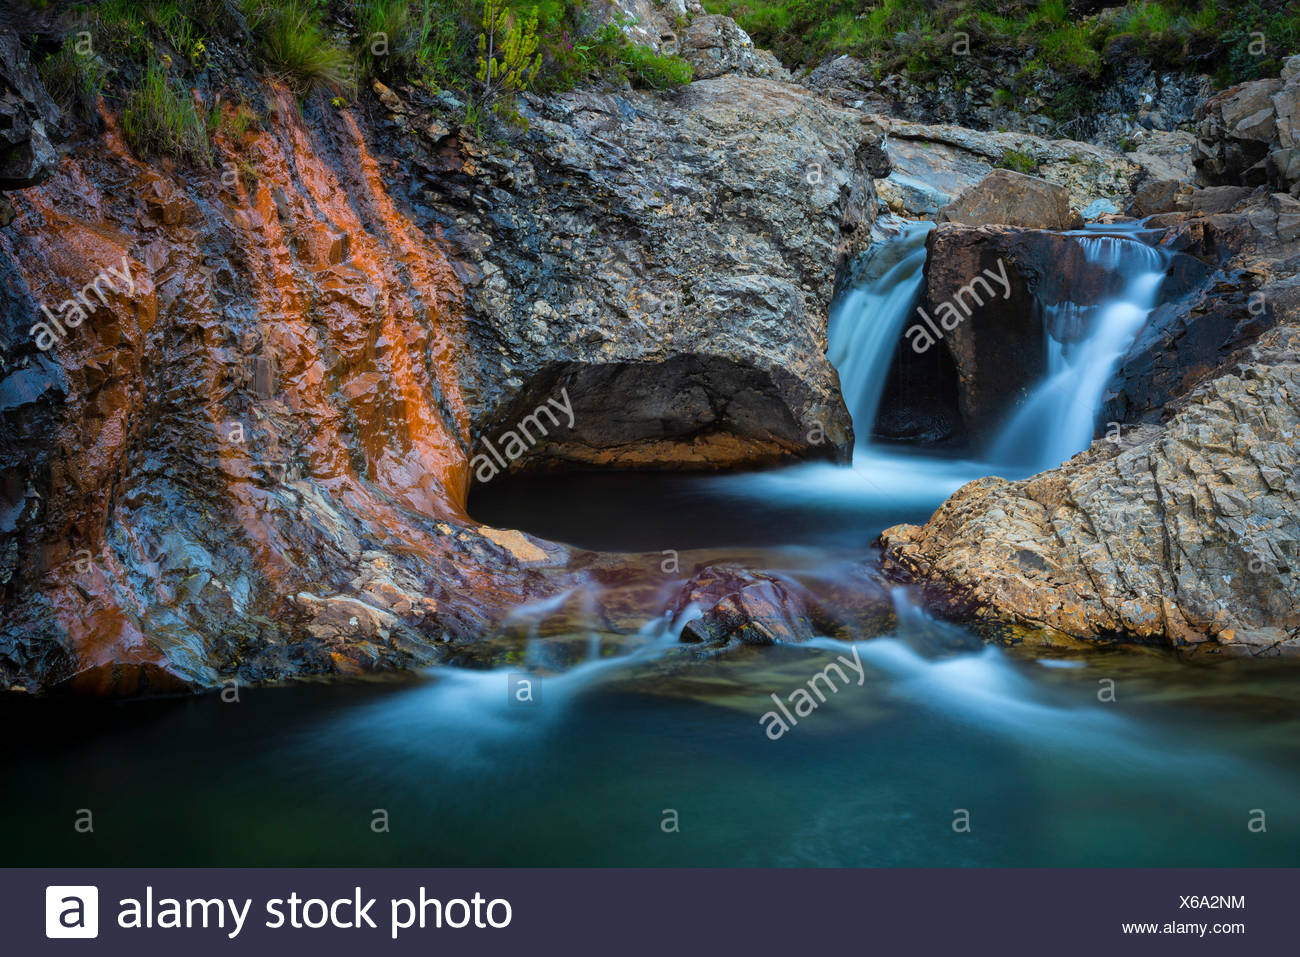 Scotland, Hebrides archipelago, Isle of Skye, Fairy pools - Stock Image